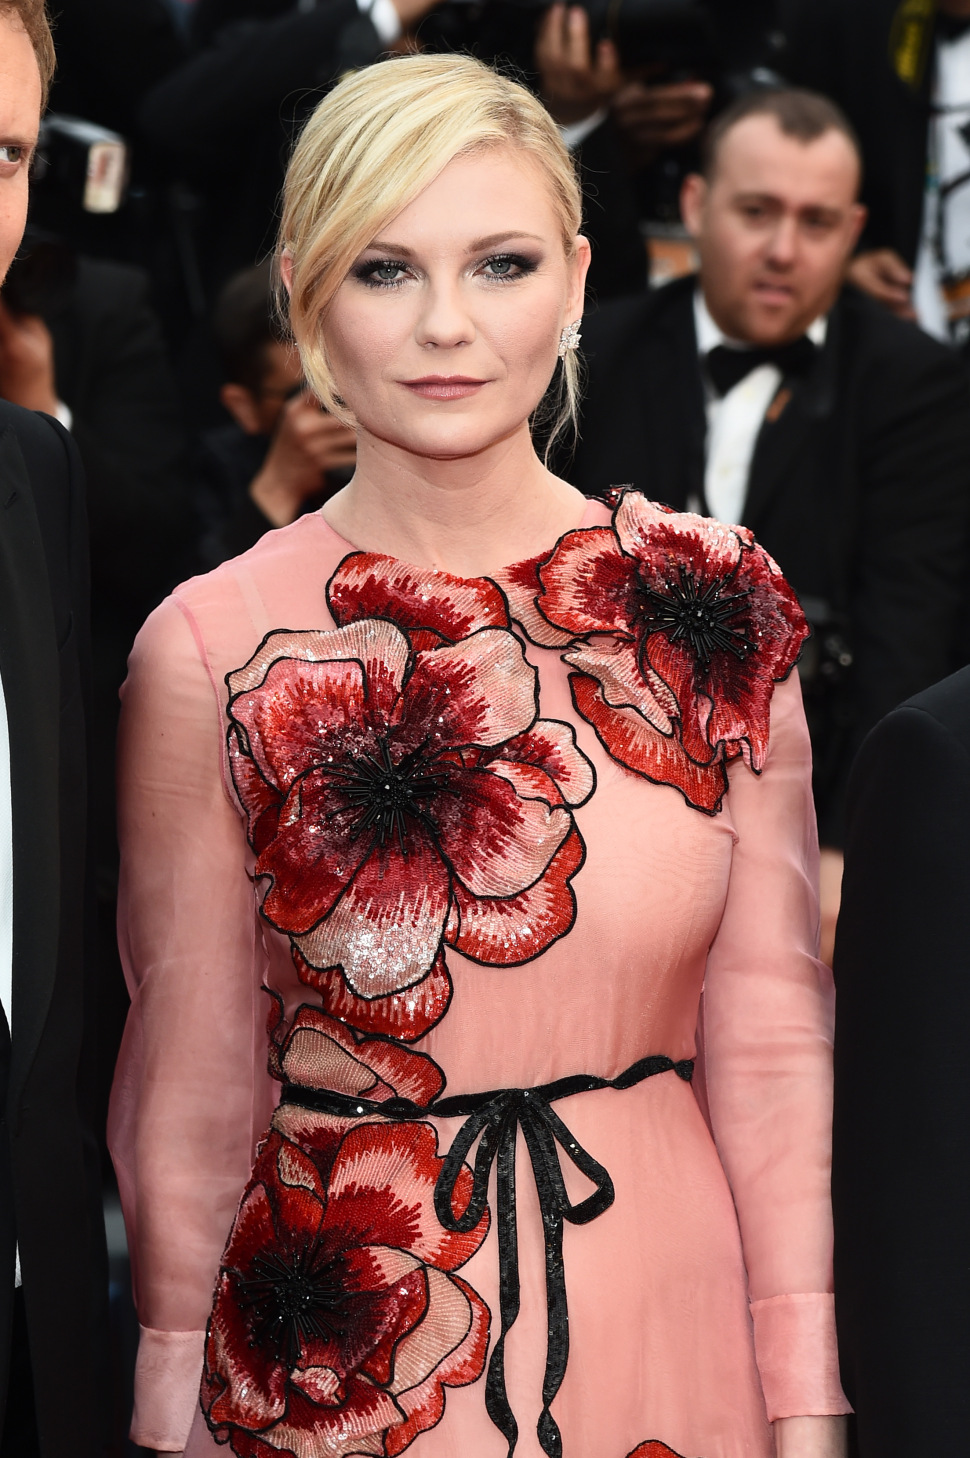 Mandatory Credit: Photo by Buckner/Variety/REX/Shutterstock (5682159bo) Kirsten Dunst'Cafe Society' premiere and opening ceremony, 69th Cannes Film Festival, France - 11 May 2016